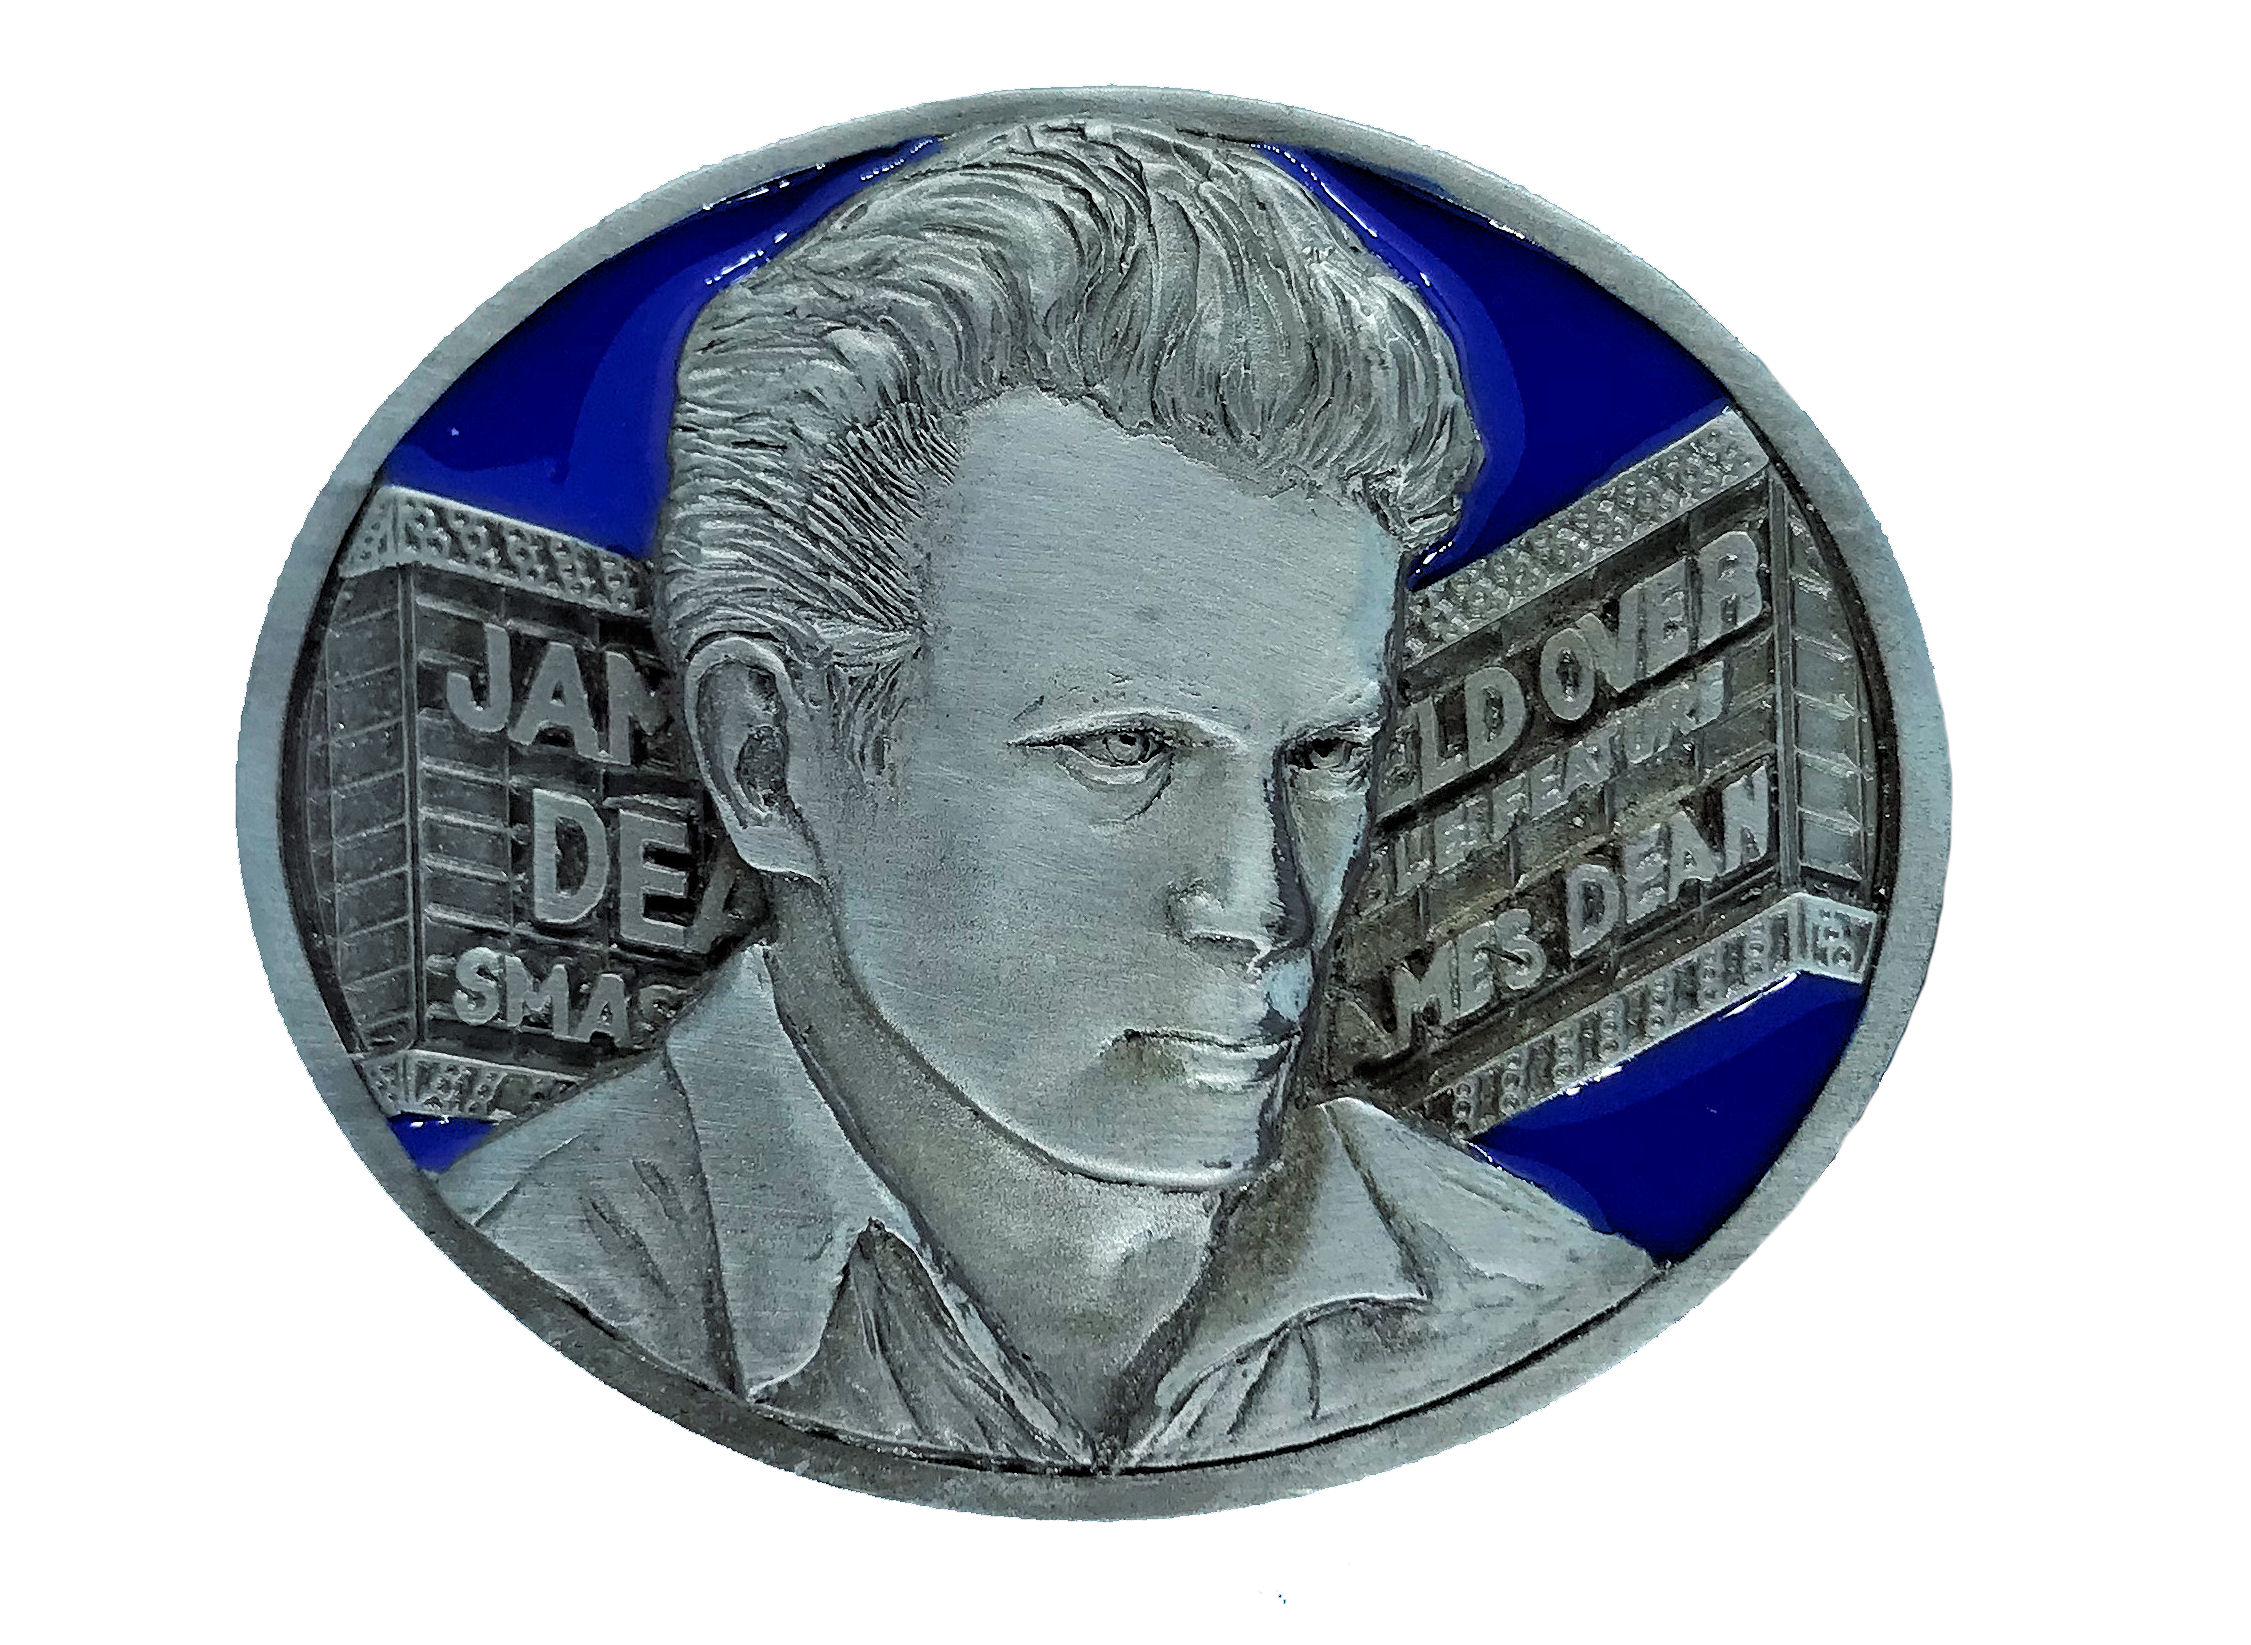 James Dean - Marquee Blue